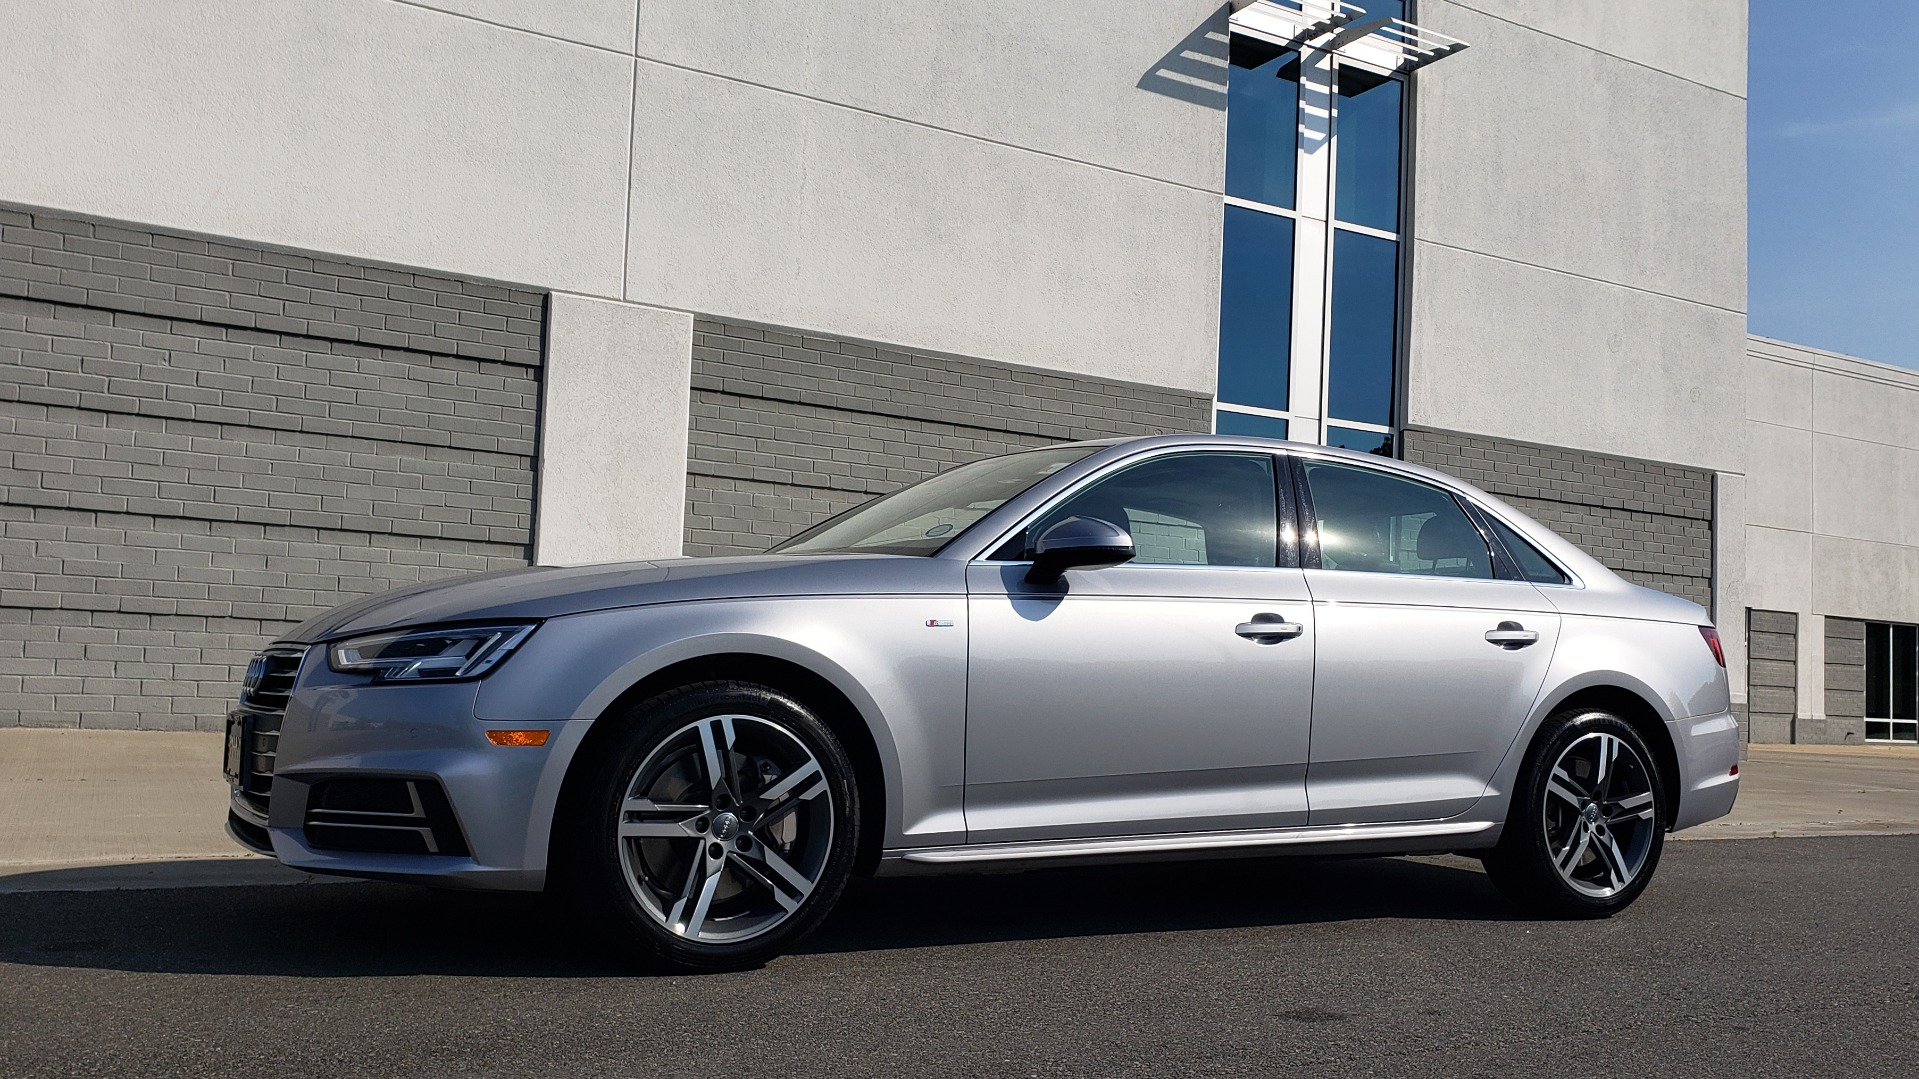 Used 2018 Audi A4 PREMIUM PLUS 2.0T / NAV / SUNROOF / B&O SND / CLD WTHR / REARVIEW for sale $29,395 at Formula Imports in Charlotte NC 28227 5